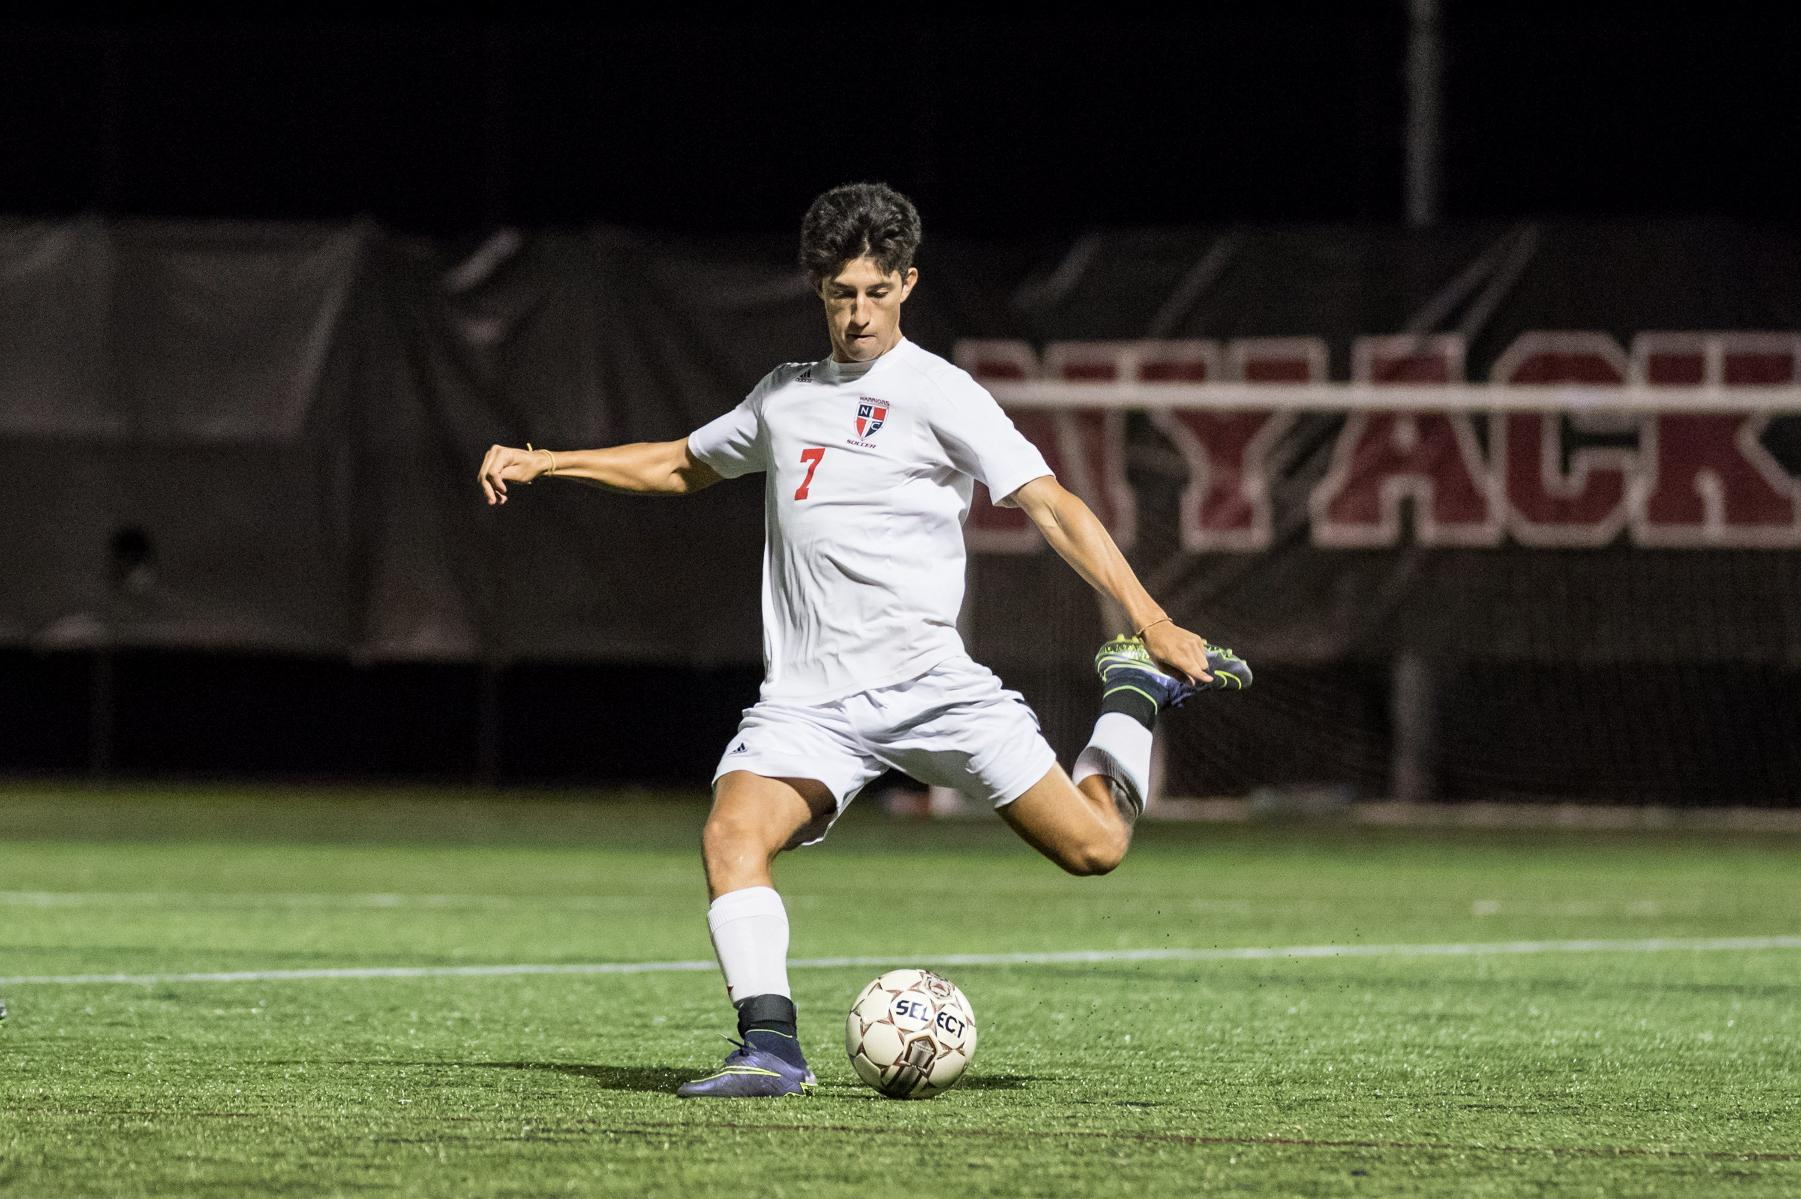 Lions top Nyack Men's Soccer, 0-2